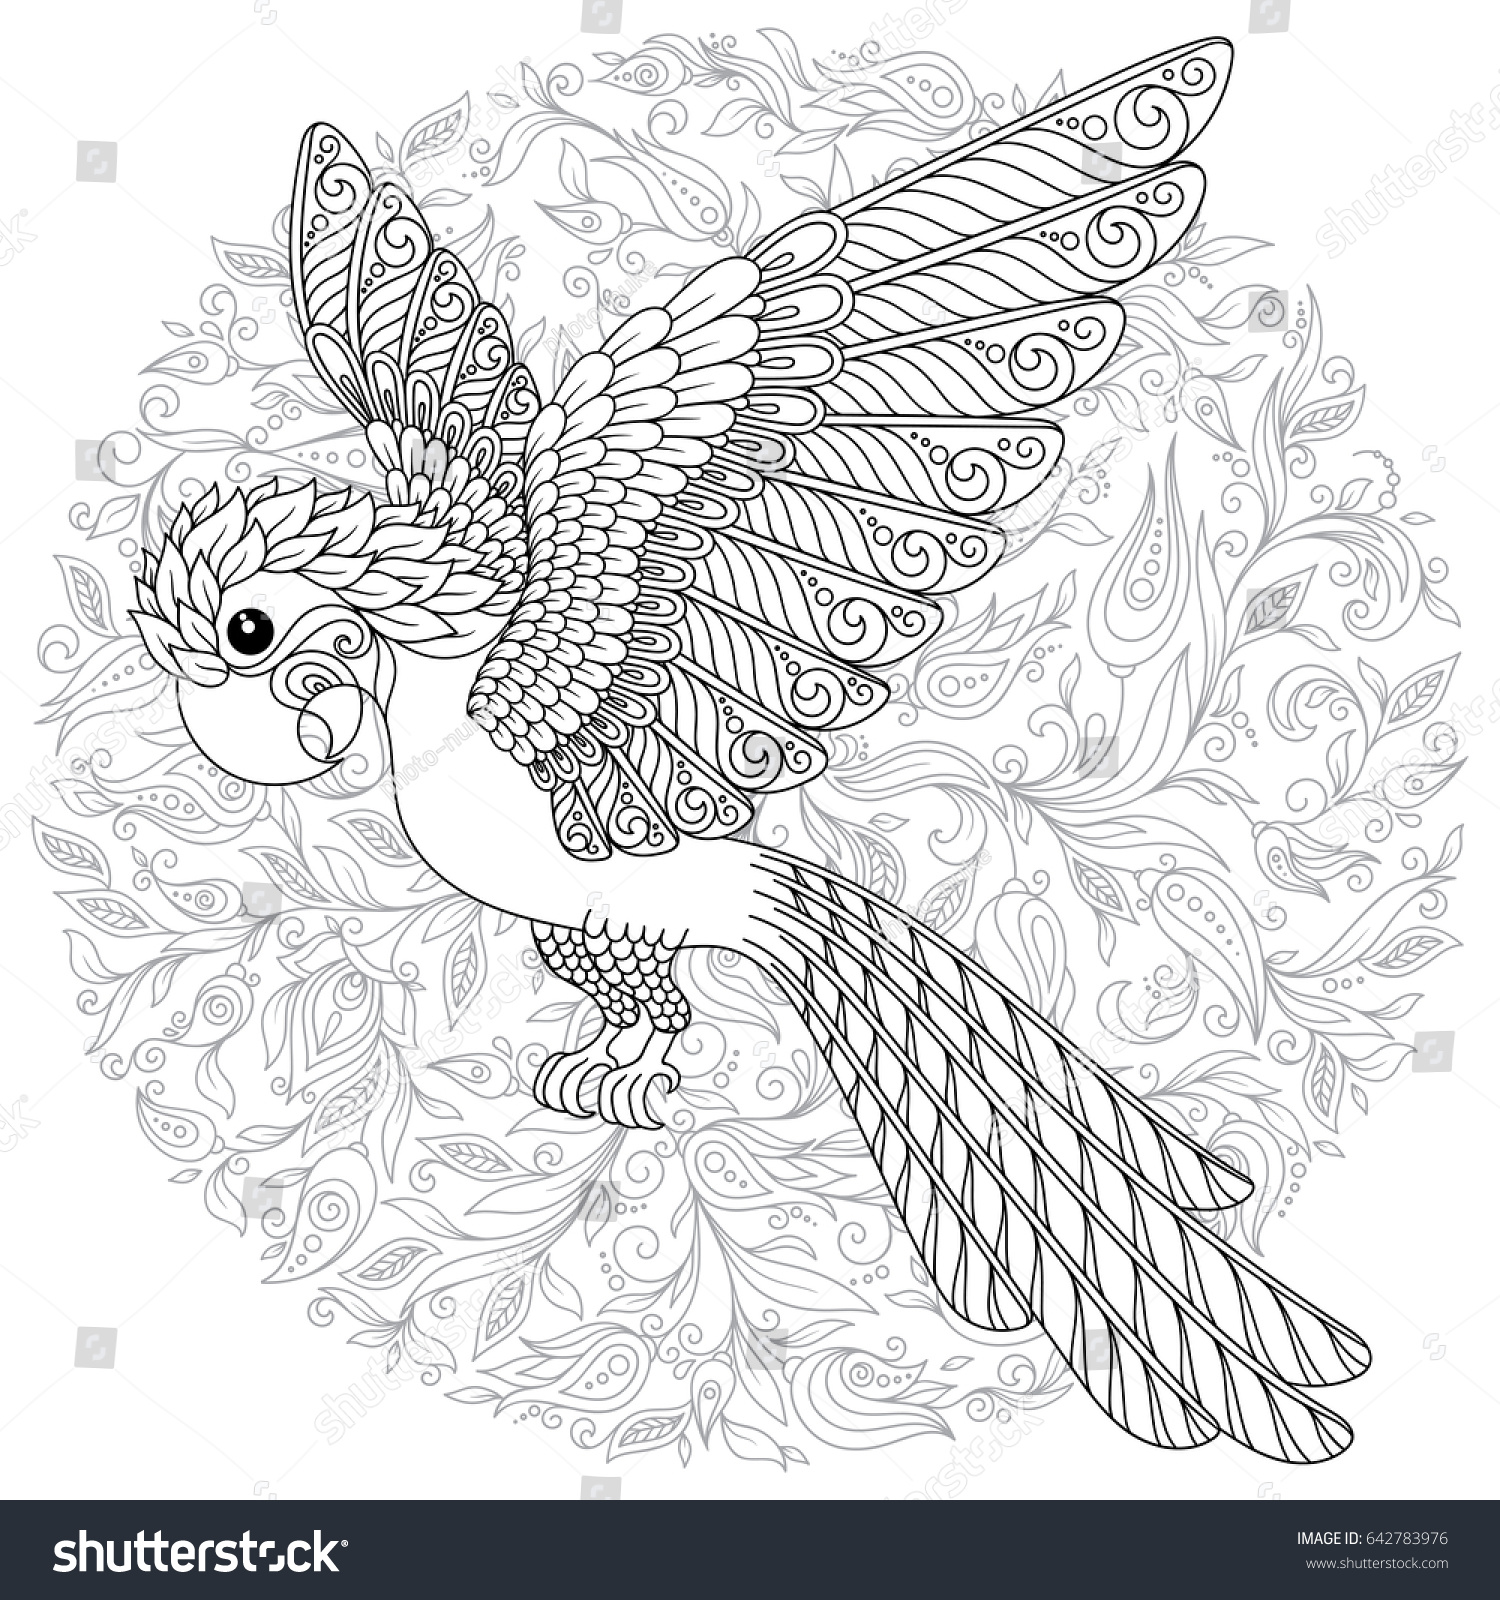 Tropical Bird Vector Illustration Coloring Book For Adult And Older Children